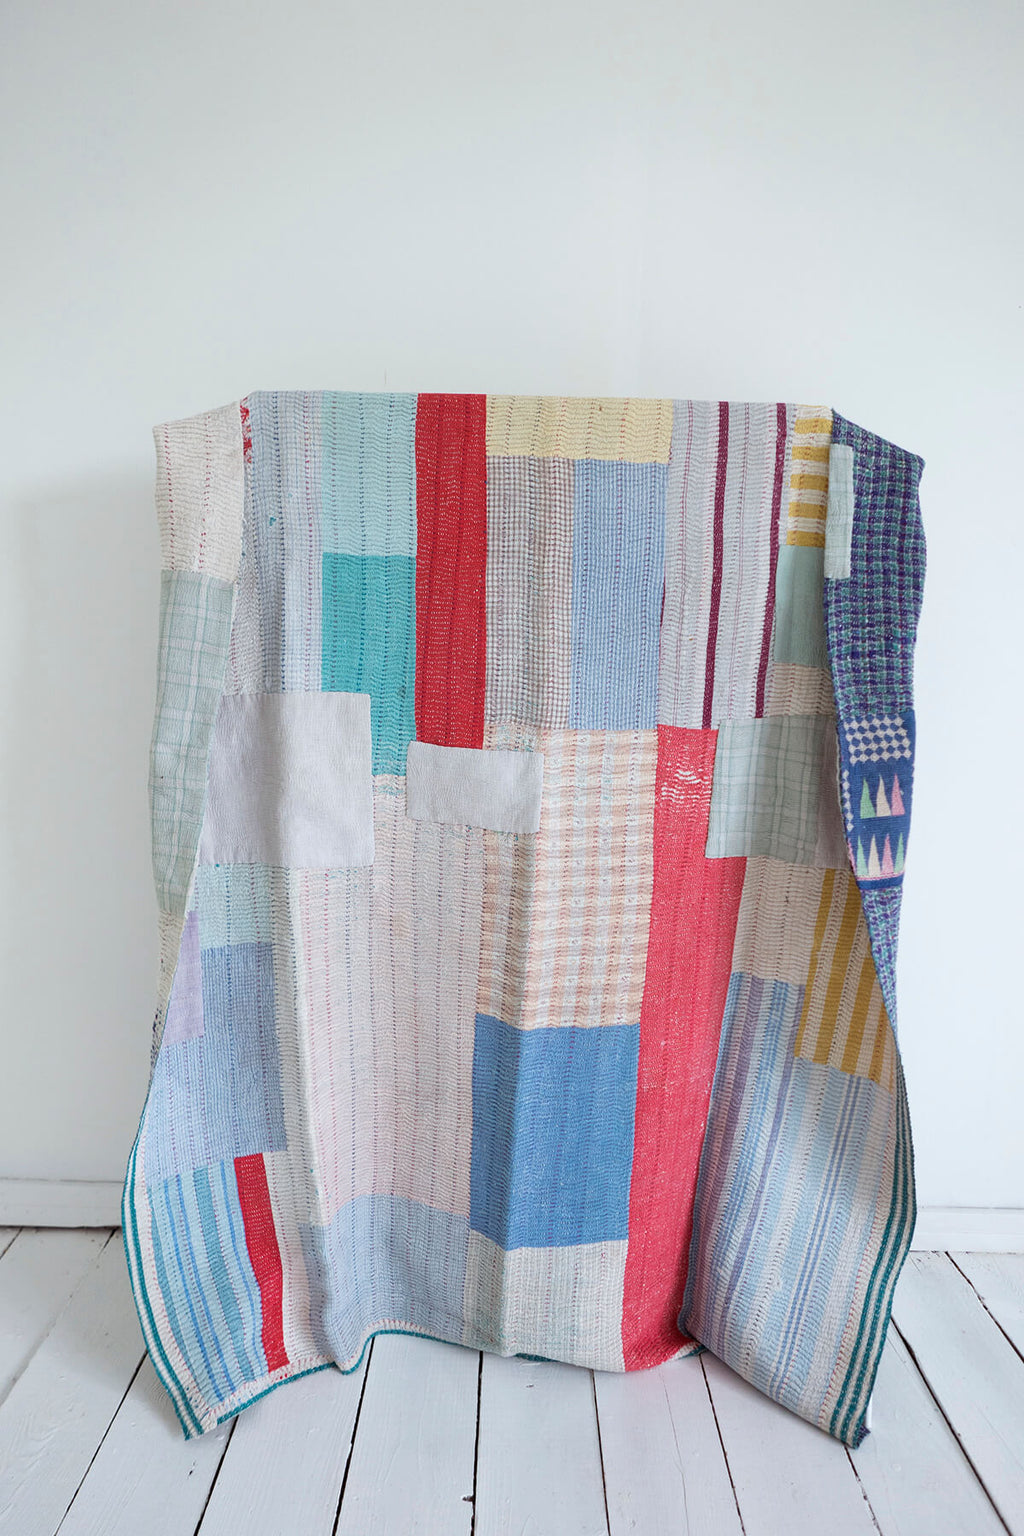 Vintage Kantha Quilt with Colorful Patchwork